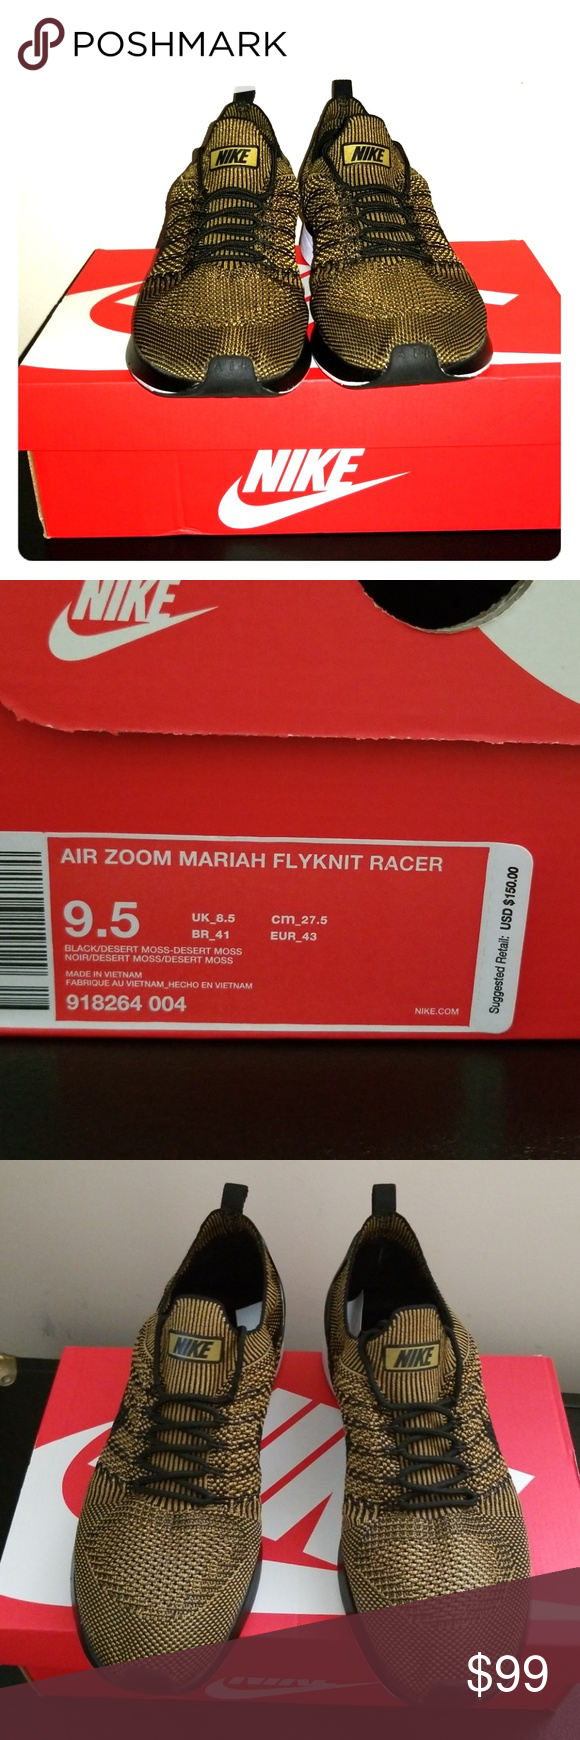 Nike air zoom mariah flykit racer nwt Flyknit racer, Chaussures